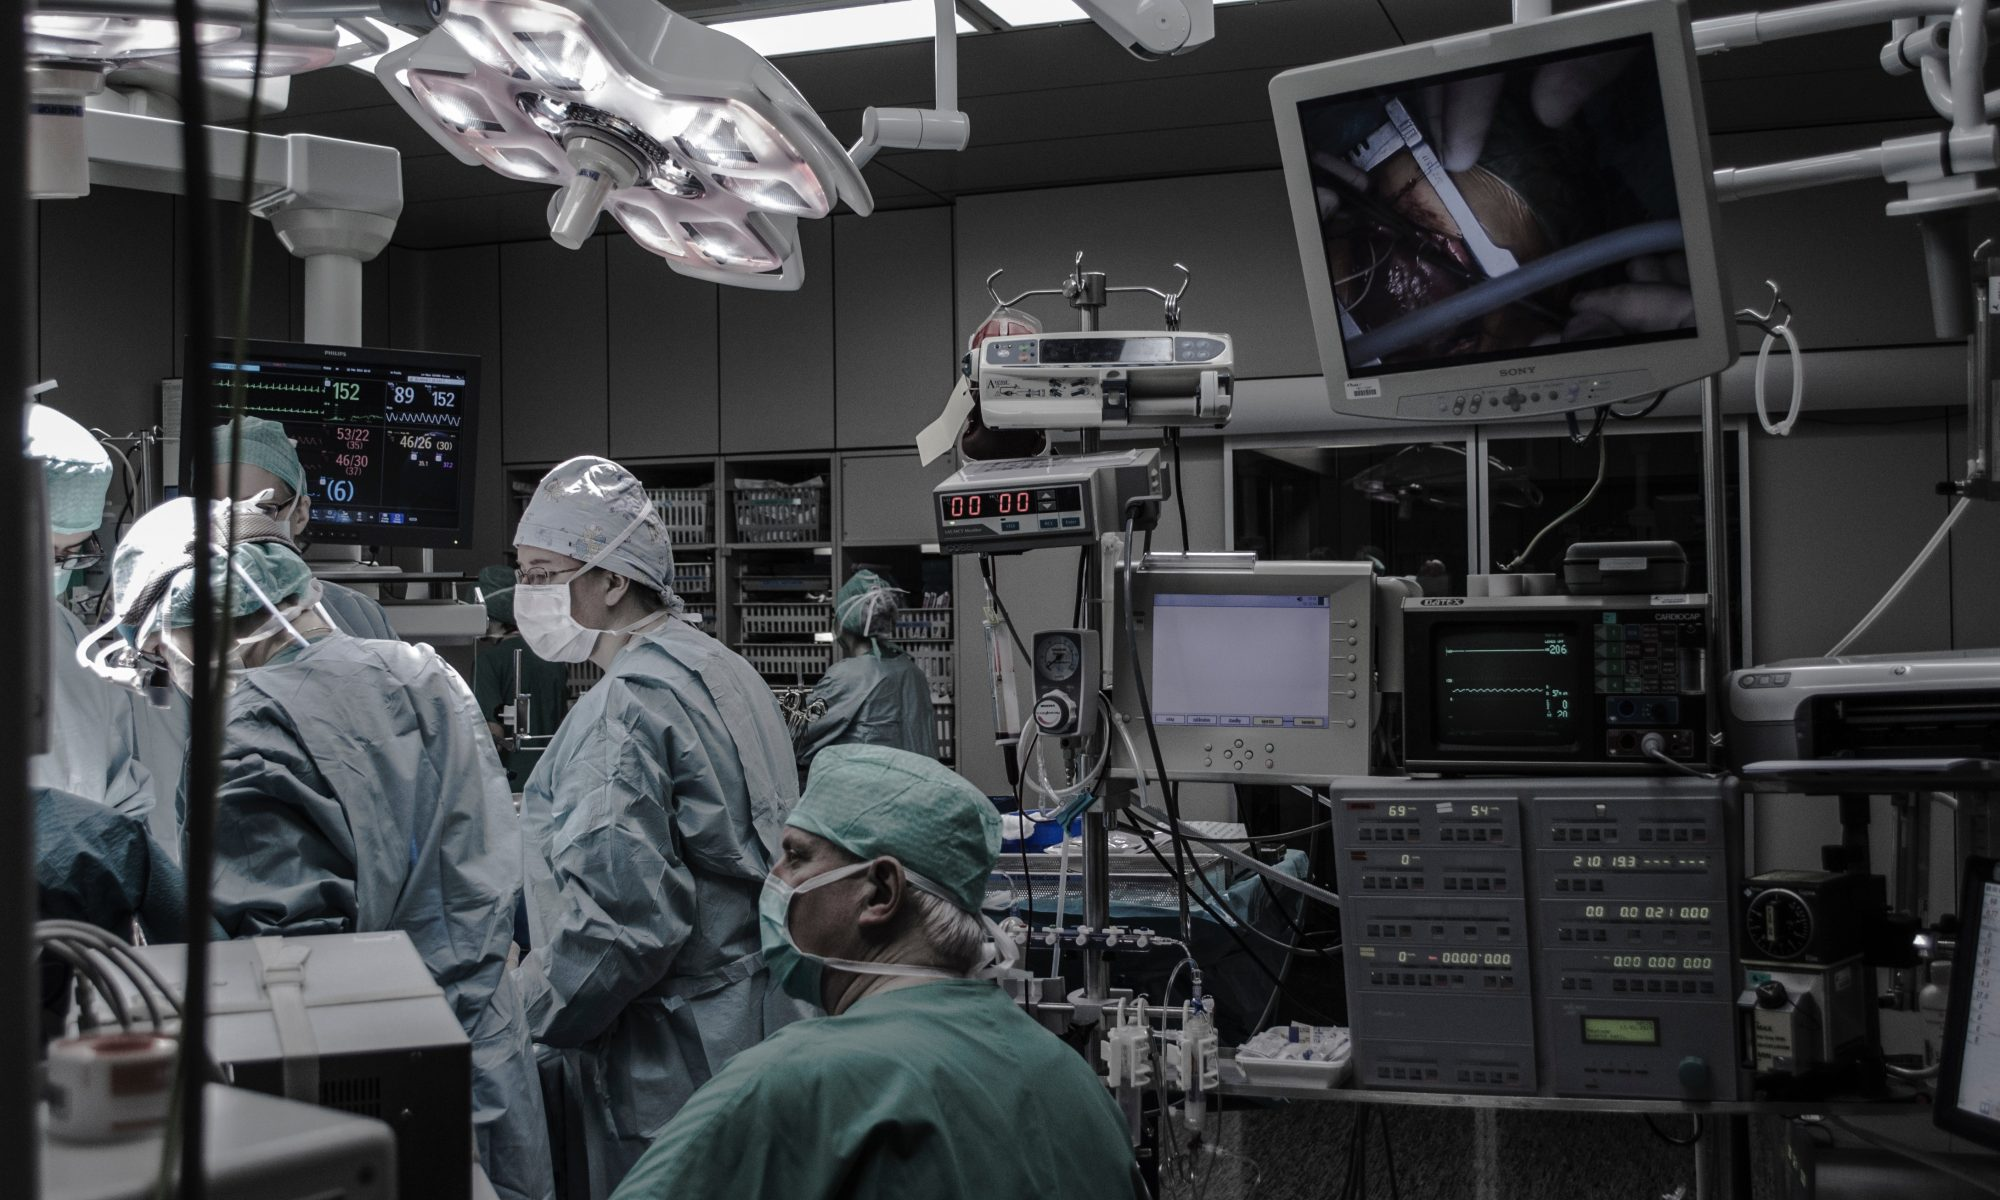 The reality of the operating theatre